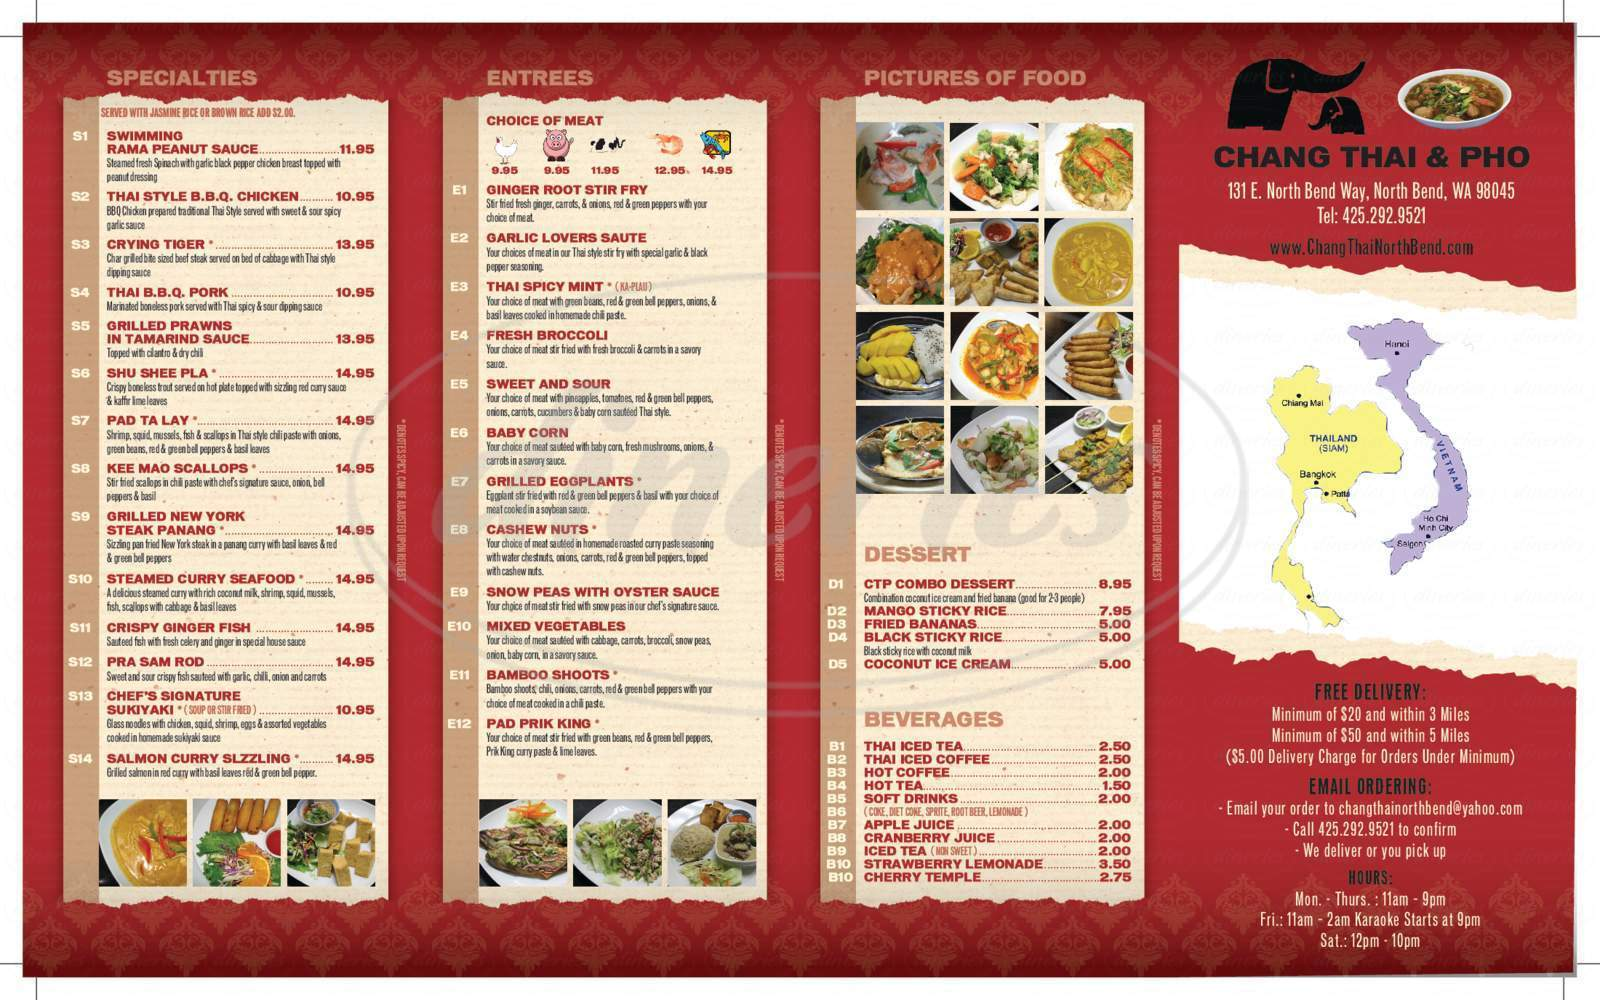 menu for Chang Thai & Pho